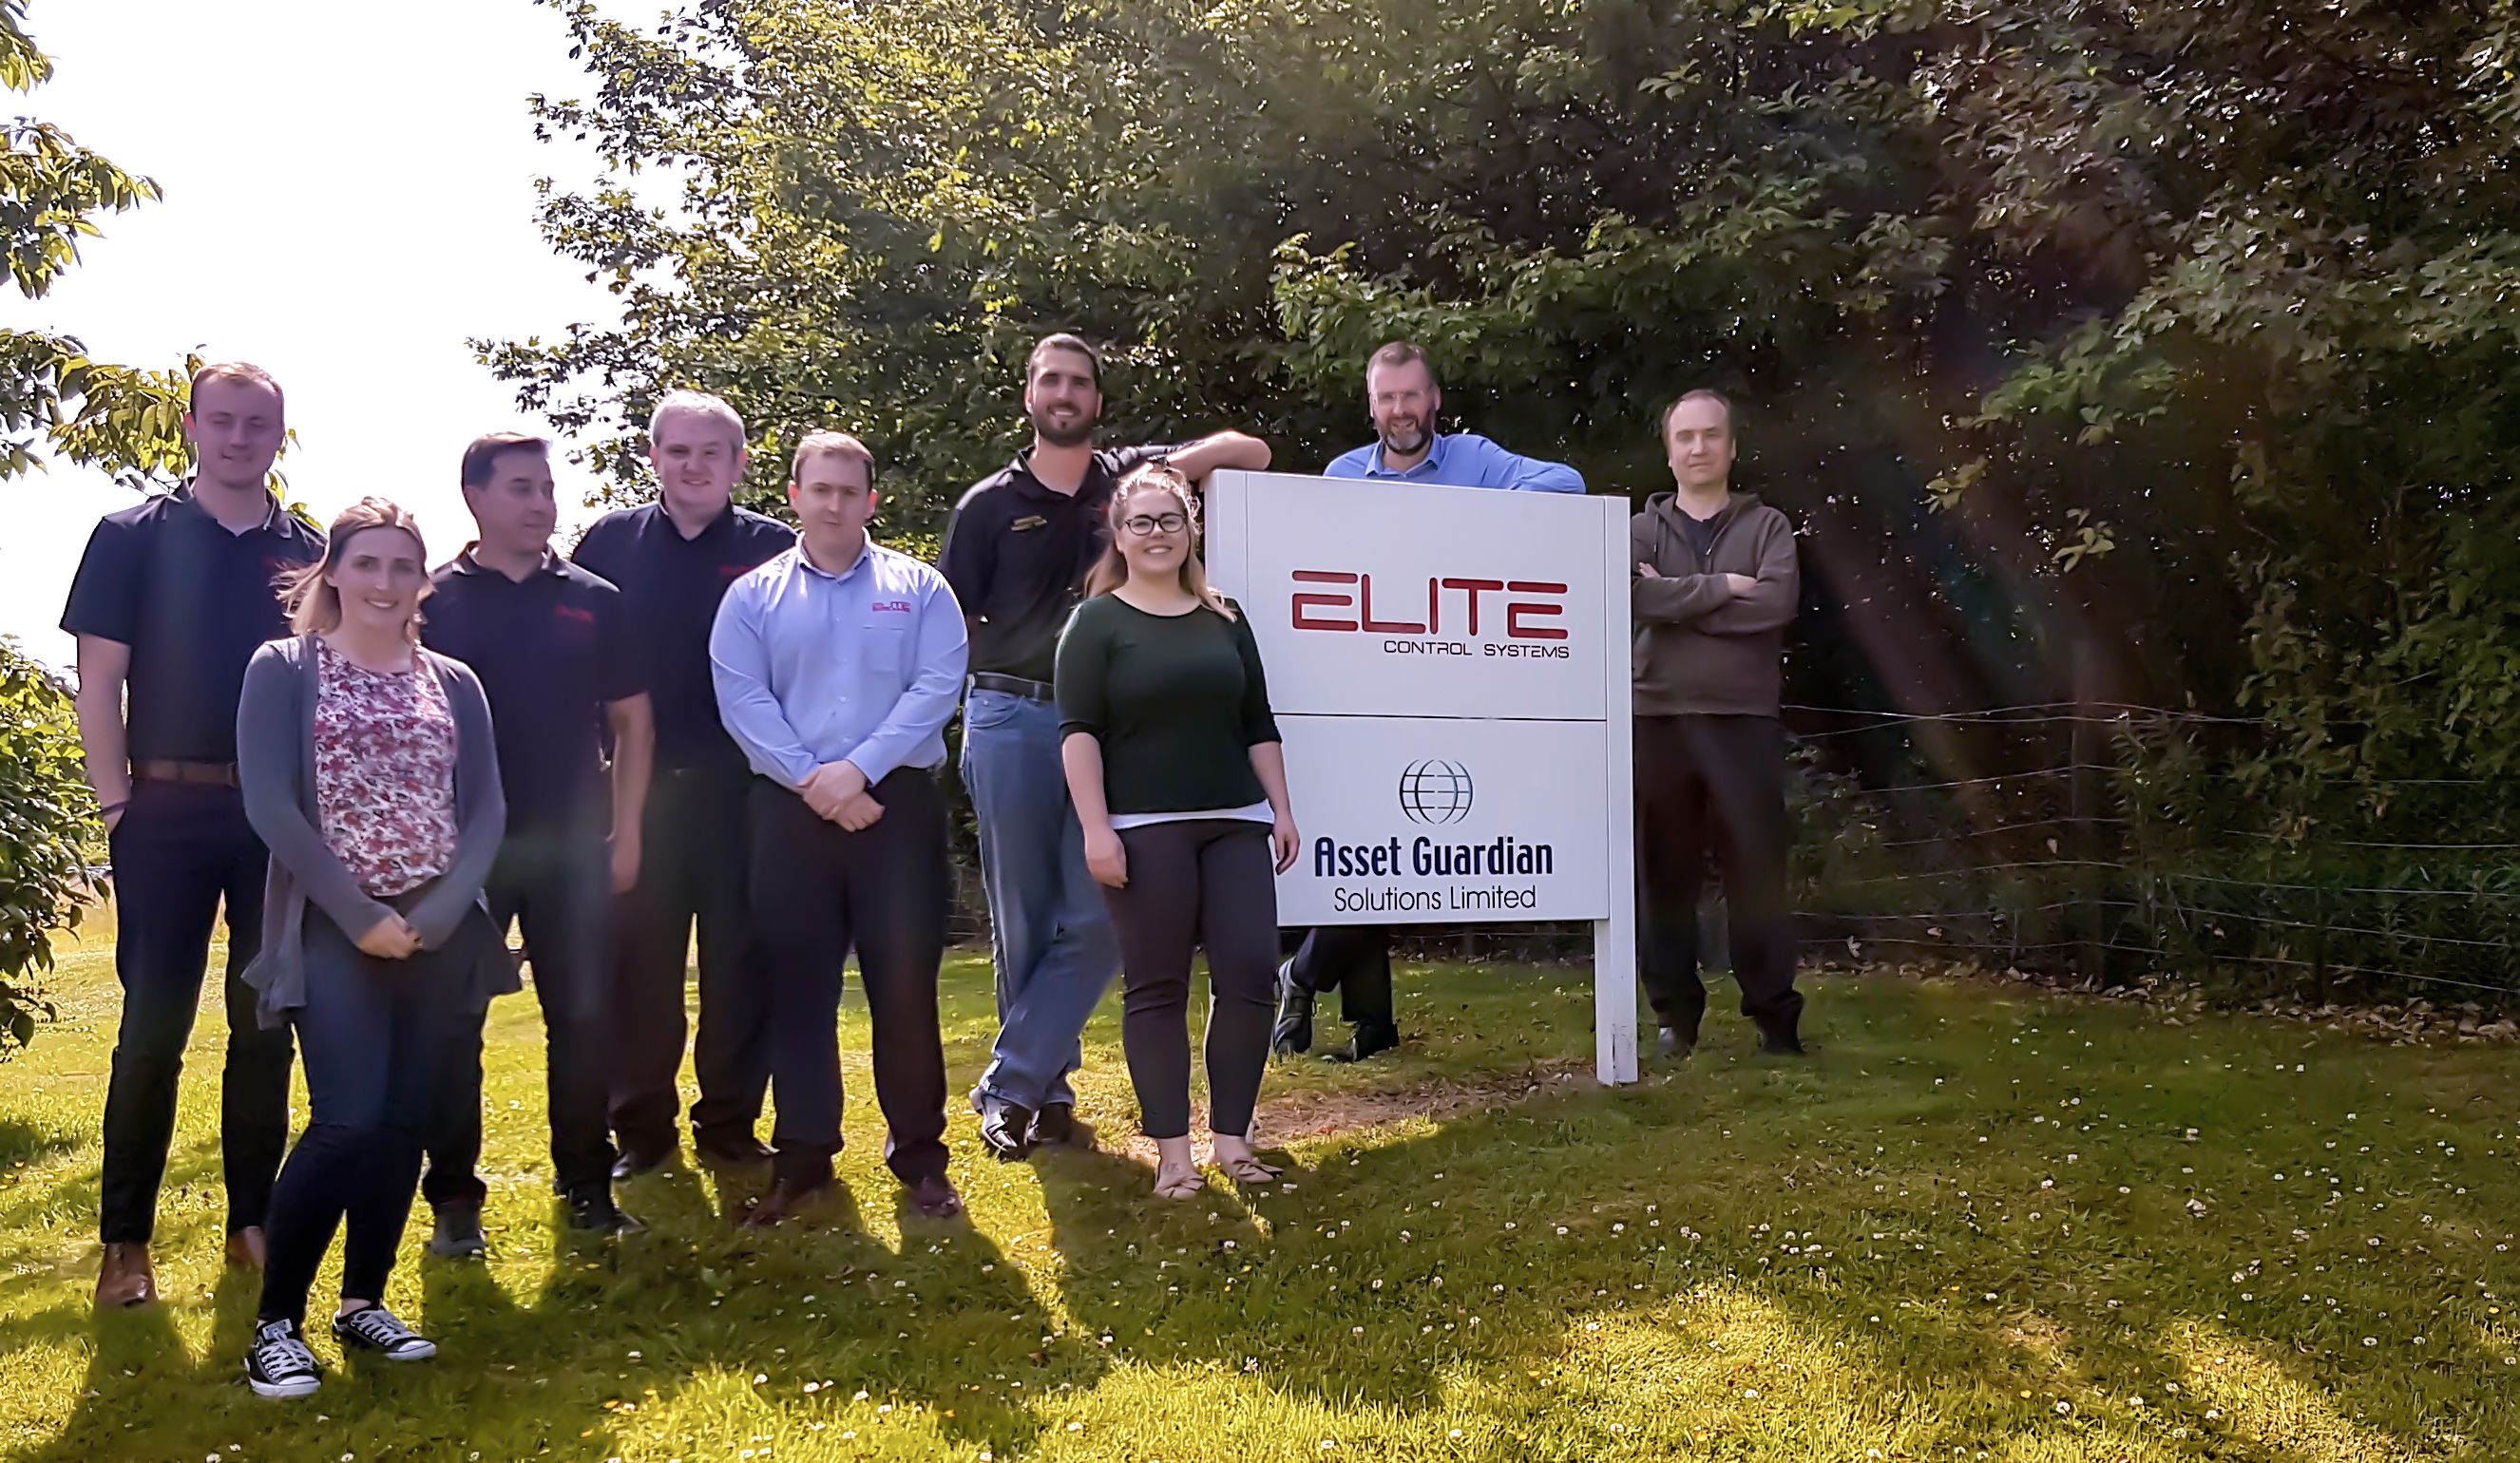 Elite Control Systems Limited and Asset Guardian Solutions Limited join forces to raise funds for SAMH (Scottish Association for Mental Health) in Edinburgh's 5k Tough Mudder Event on 25th August 2018